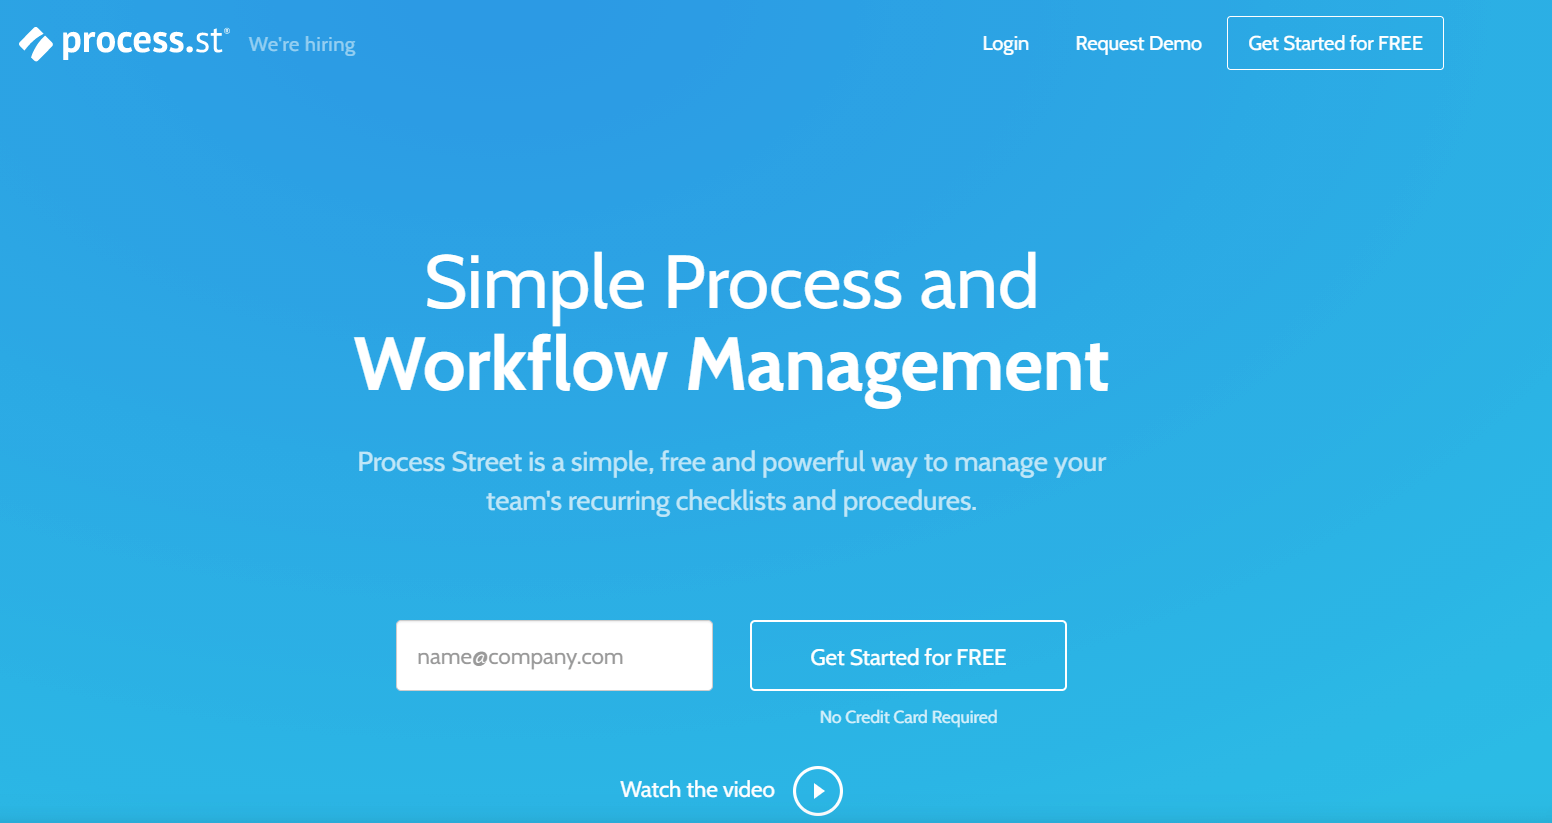 Process Street takes on workflow management software on a different approach. It serves as a checklist for all your processes and workflows so you stay efficient.